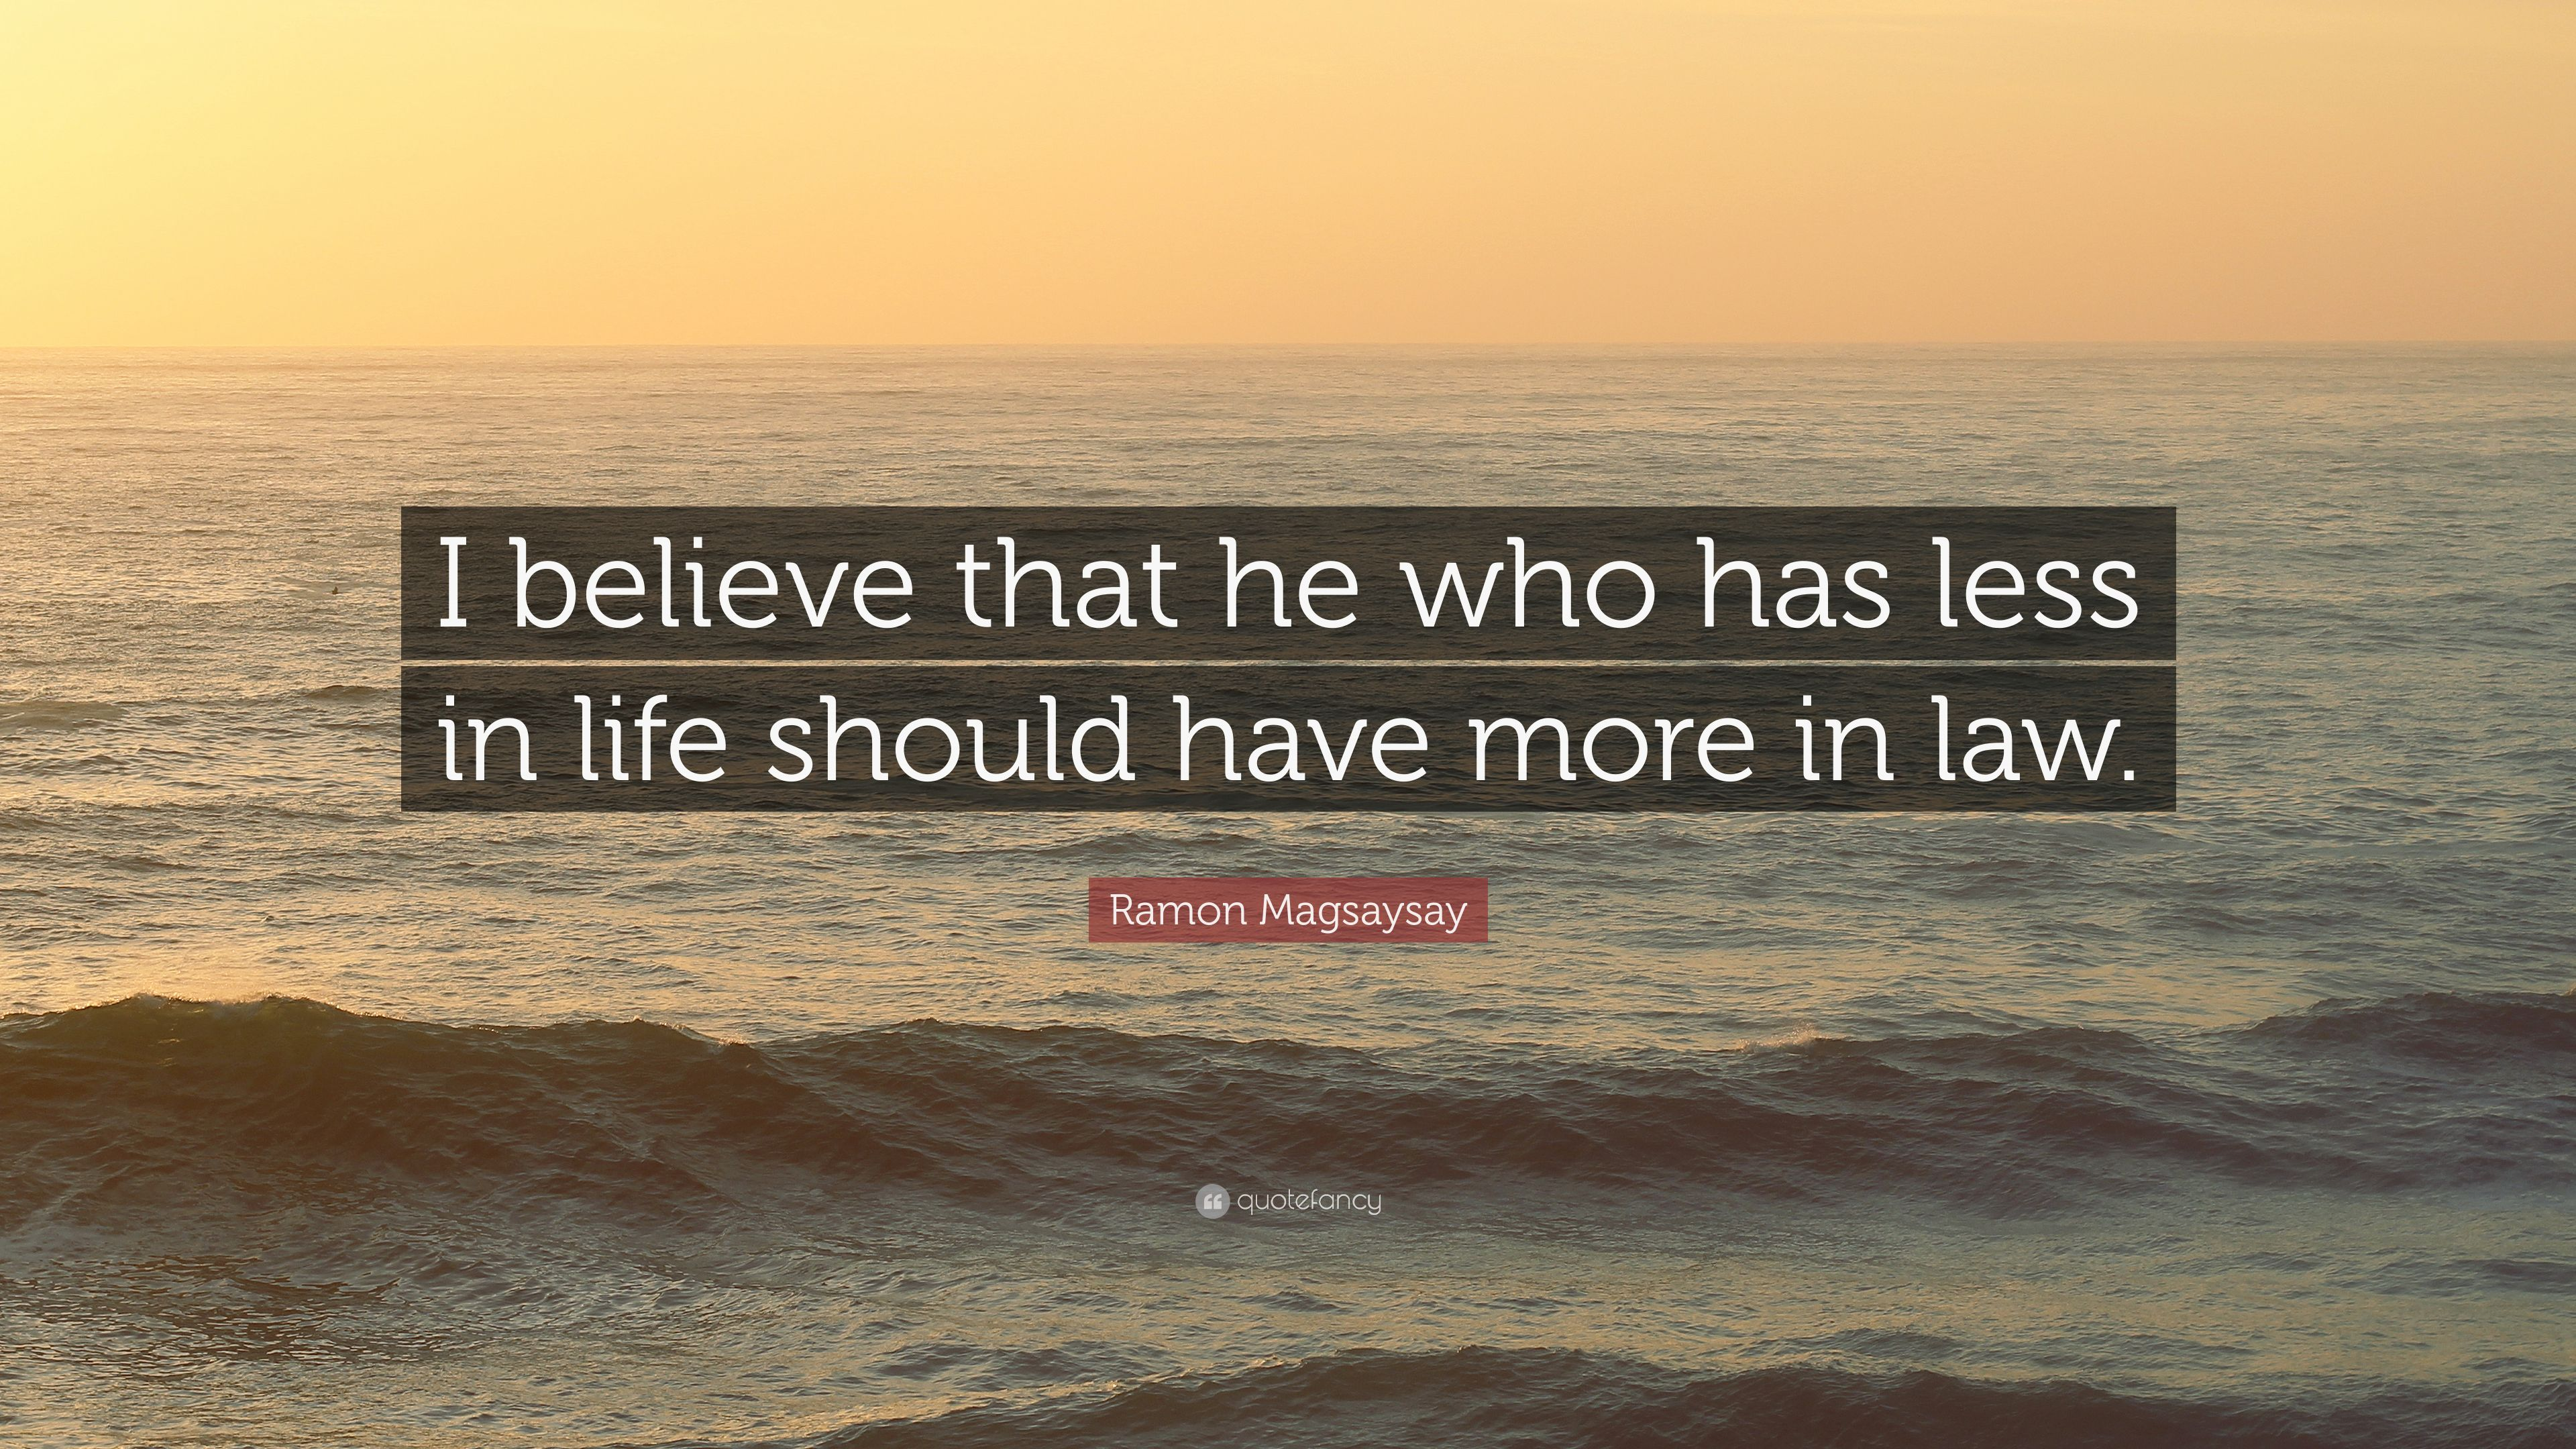 Ramon Magsaysay Quote I Believe That He Who Has Less In Life Should Have More In Law 9 Wallpapers Quotefancy I believe she deserves (to know) the state of her sick brother.4. ramon magsaysay quote i believe that